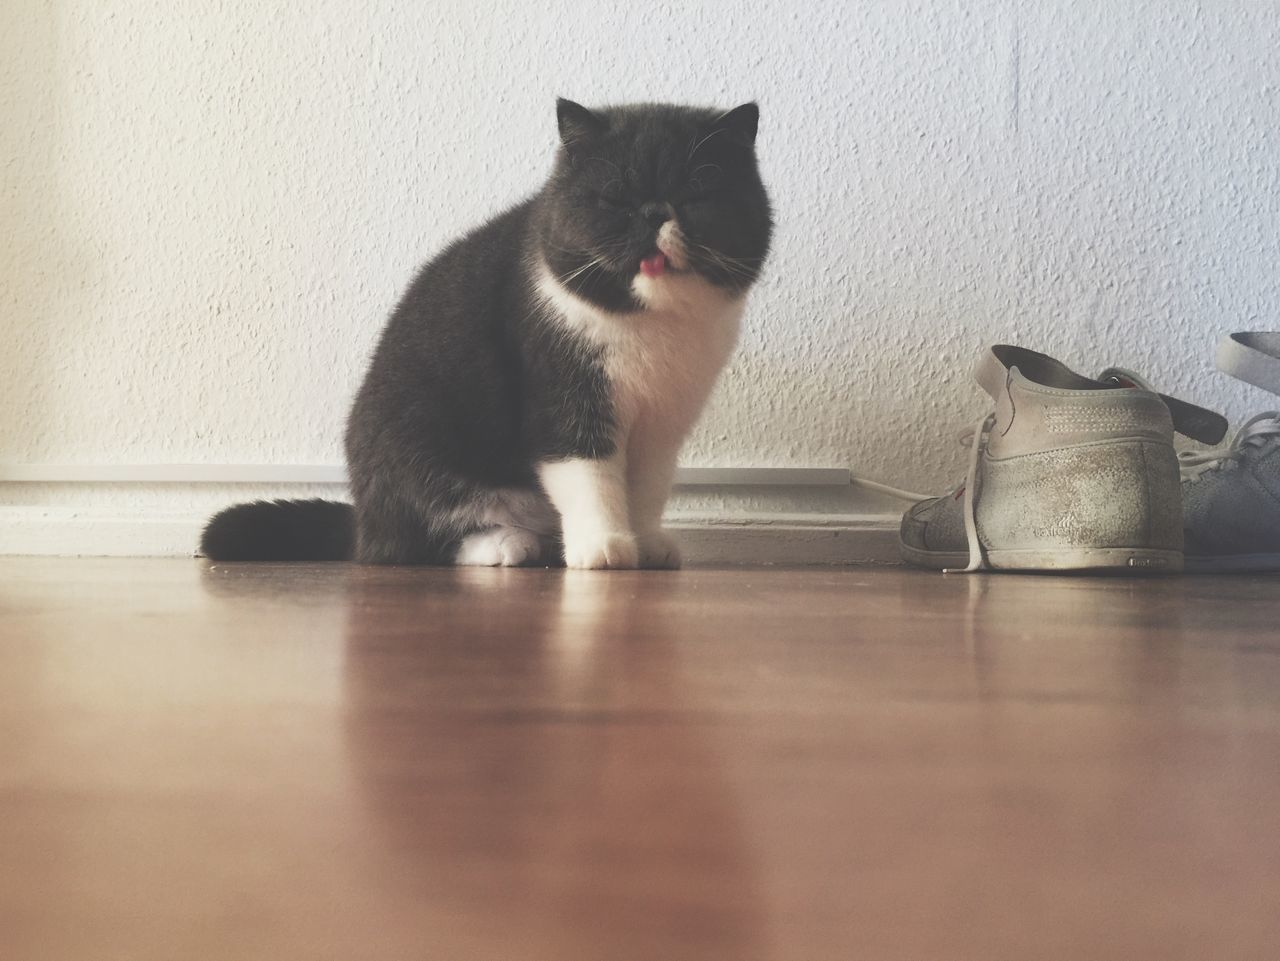 Black Cat Relaxing On Floor By Shoes